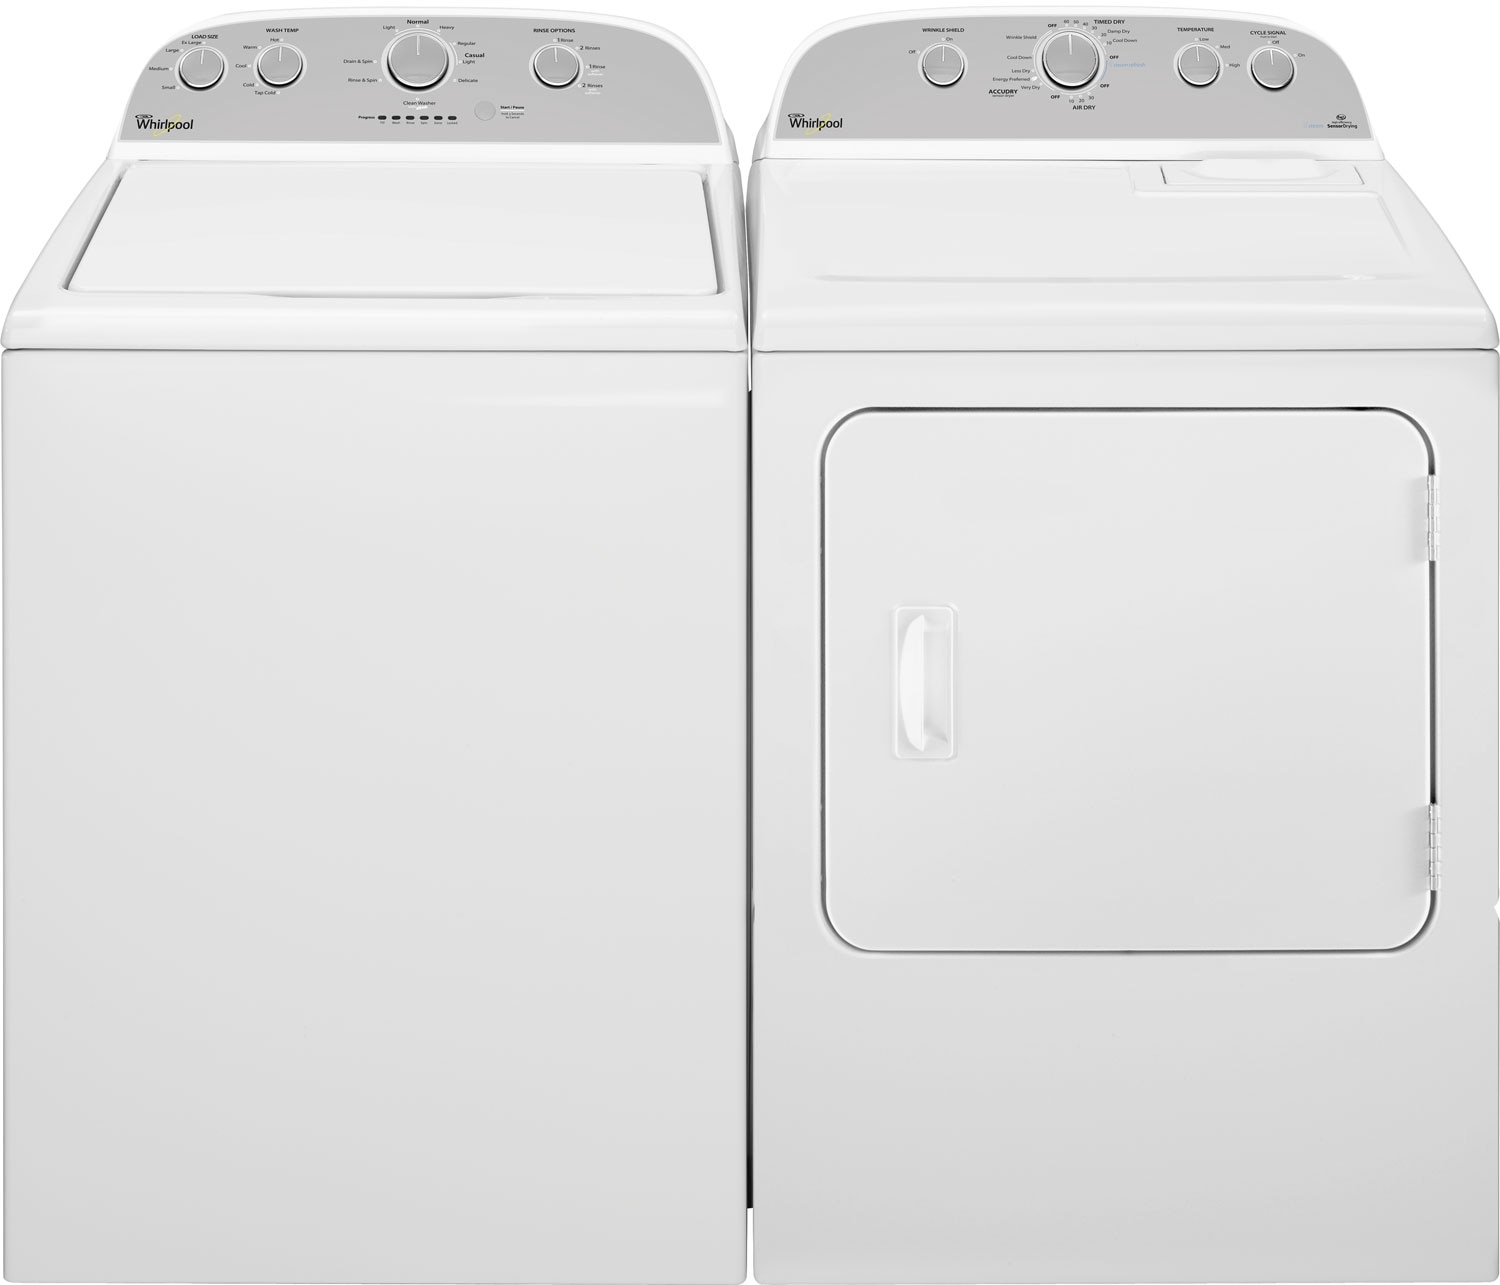 Whirlpool cabrio 5 0 cu ft top load washer and 7 0 cu ft dryer white the brick - Whirlpool duet washer and dryer ...